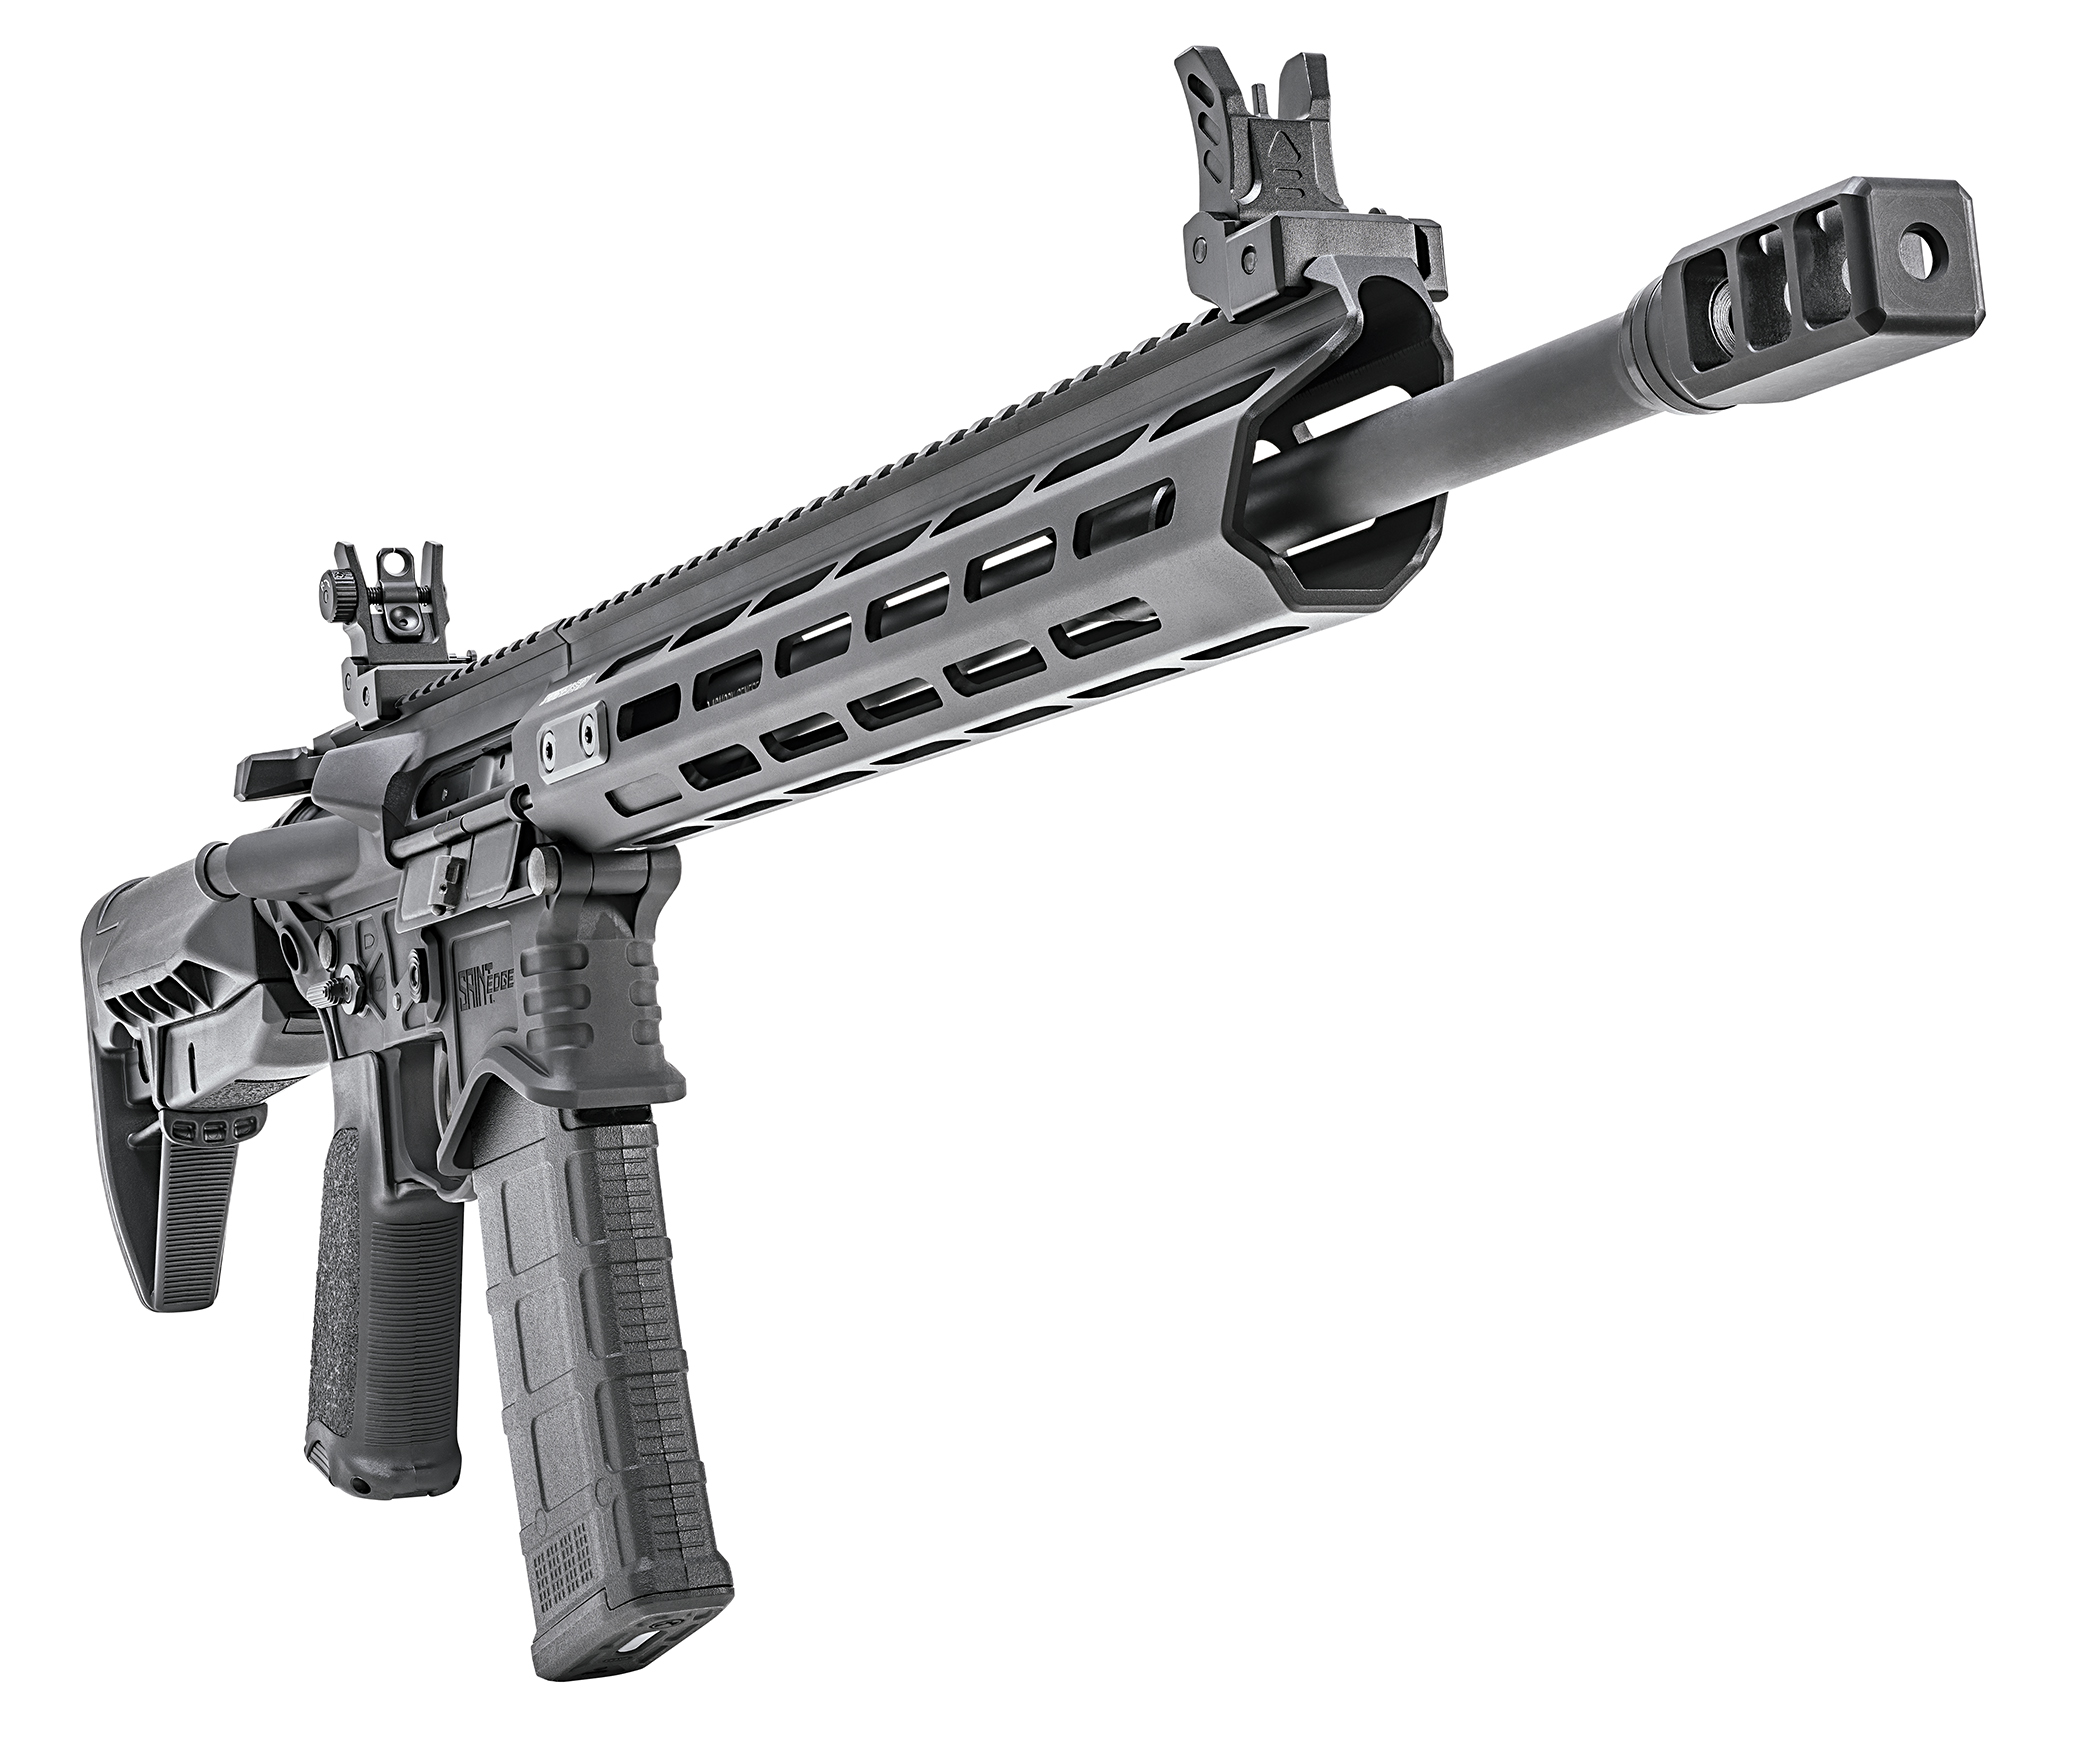 NEW Springfield Armory SAINT Edge AR-15 in 5.56 NATO